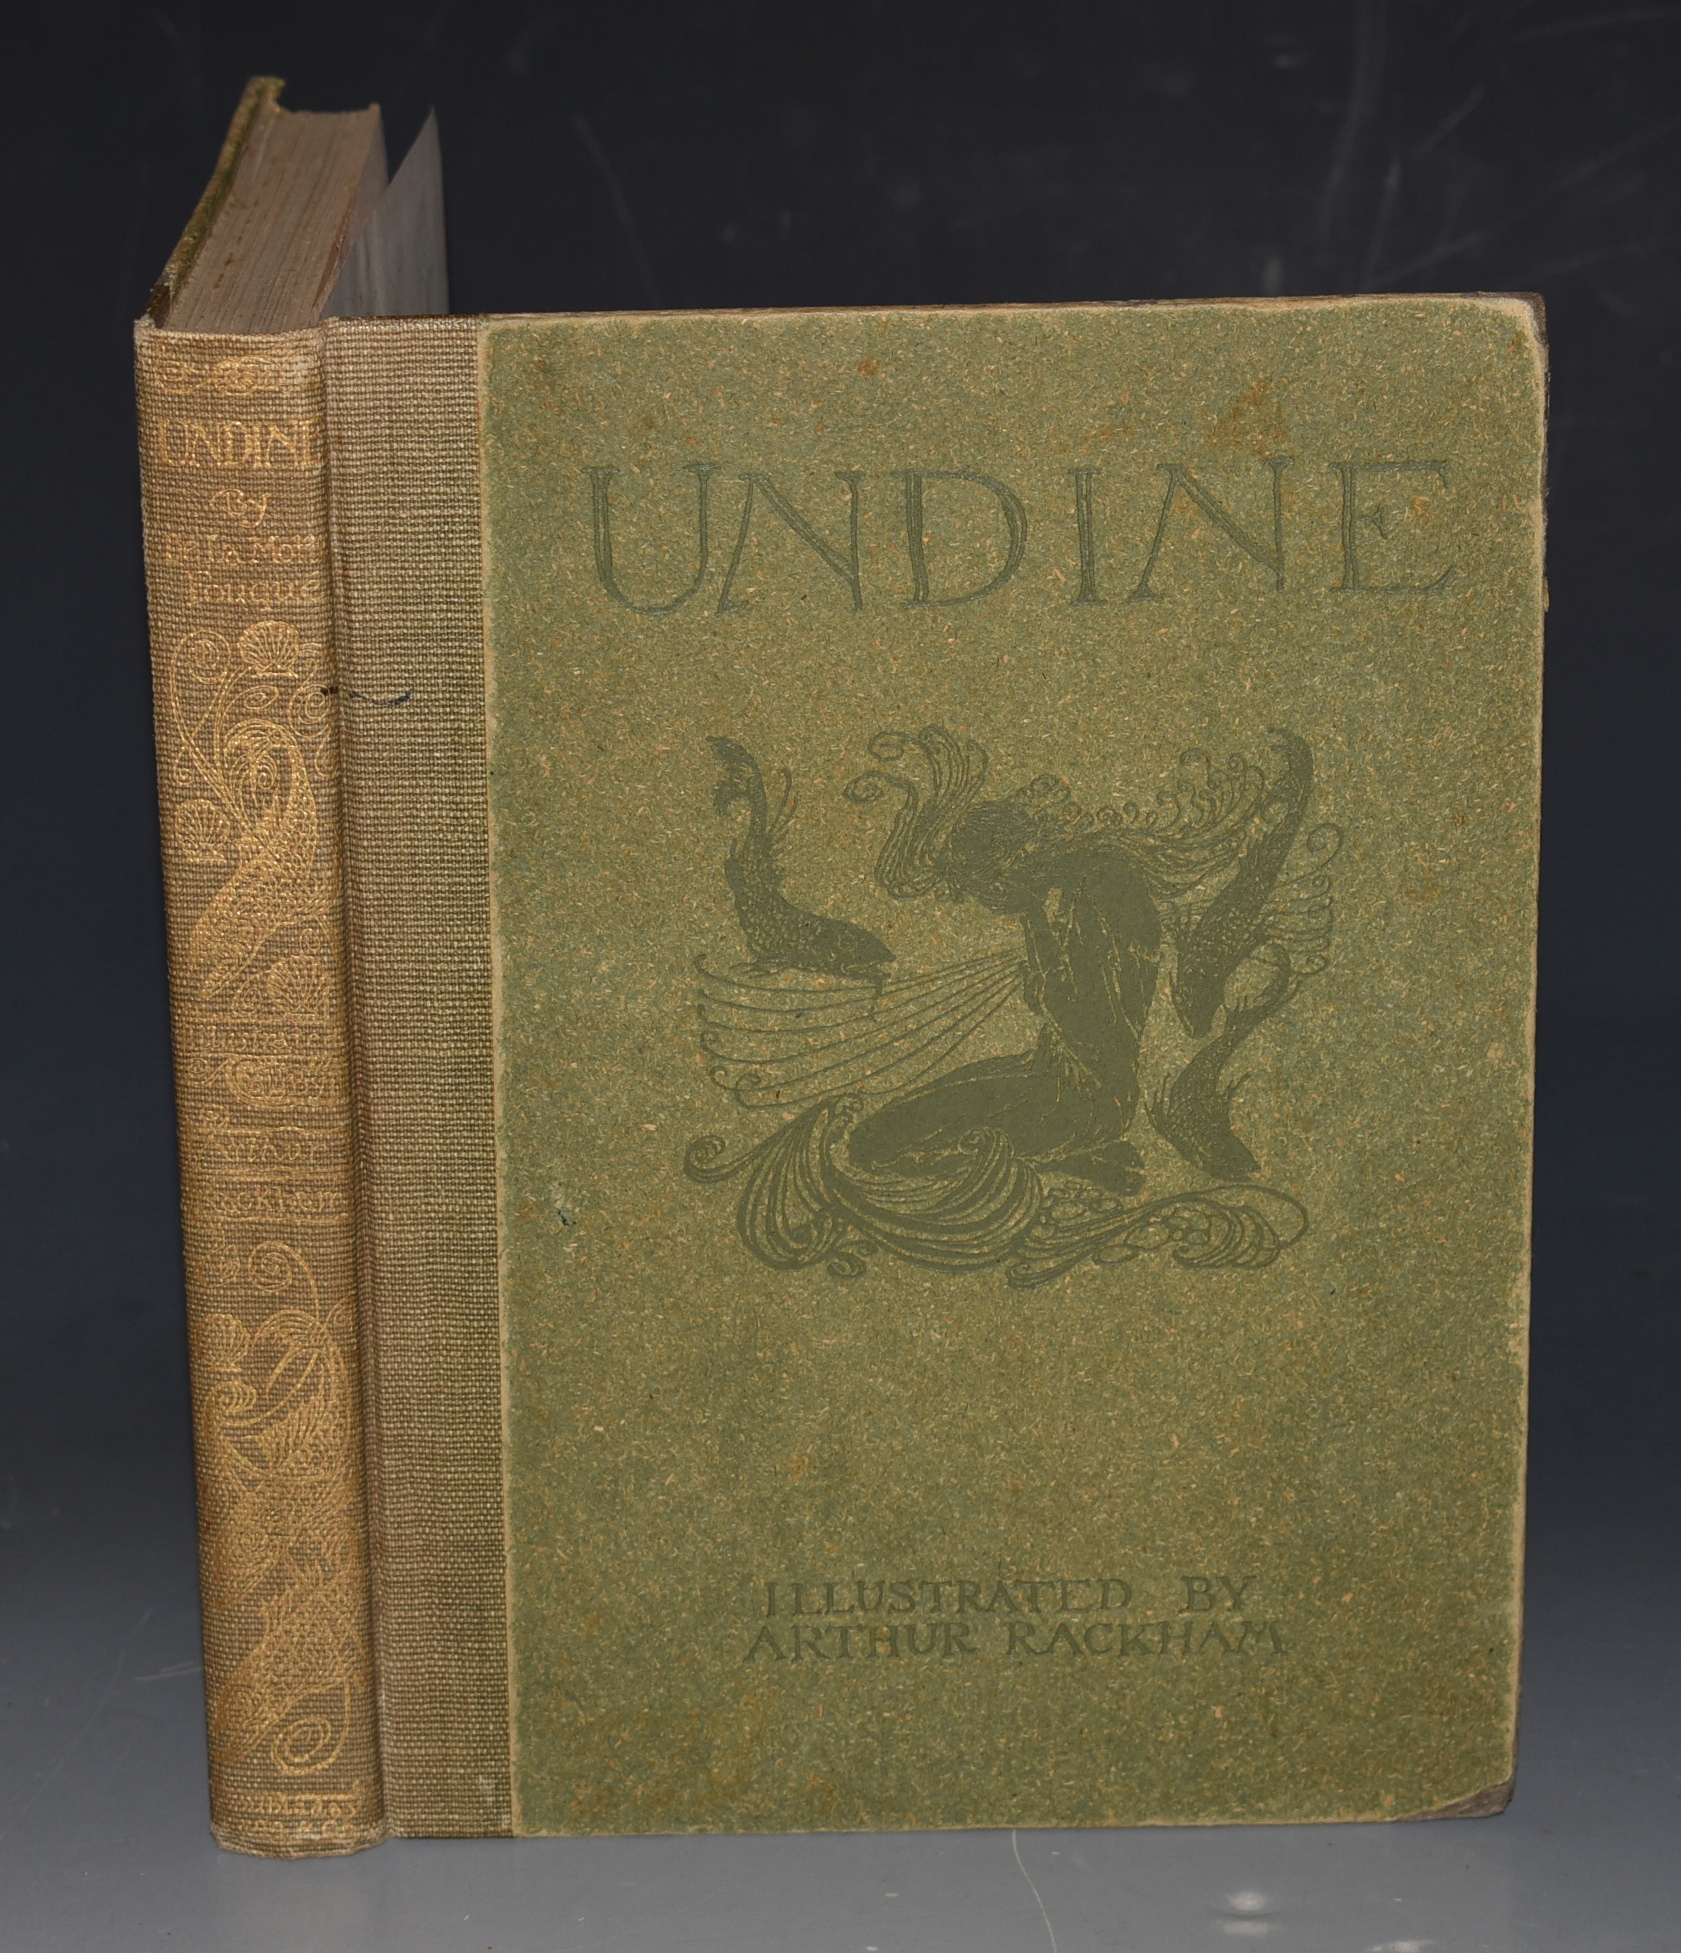 Image for Undine Adapted from the German by W. L. Courtney. And Illustrated by Arthur Rackham.